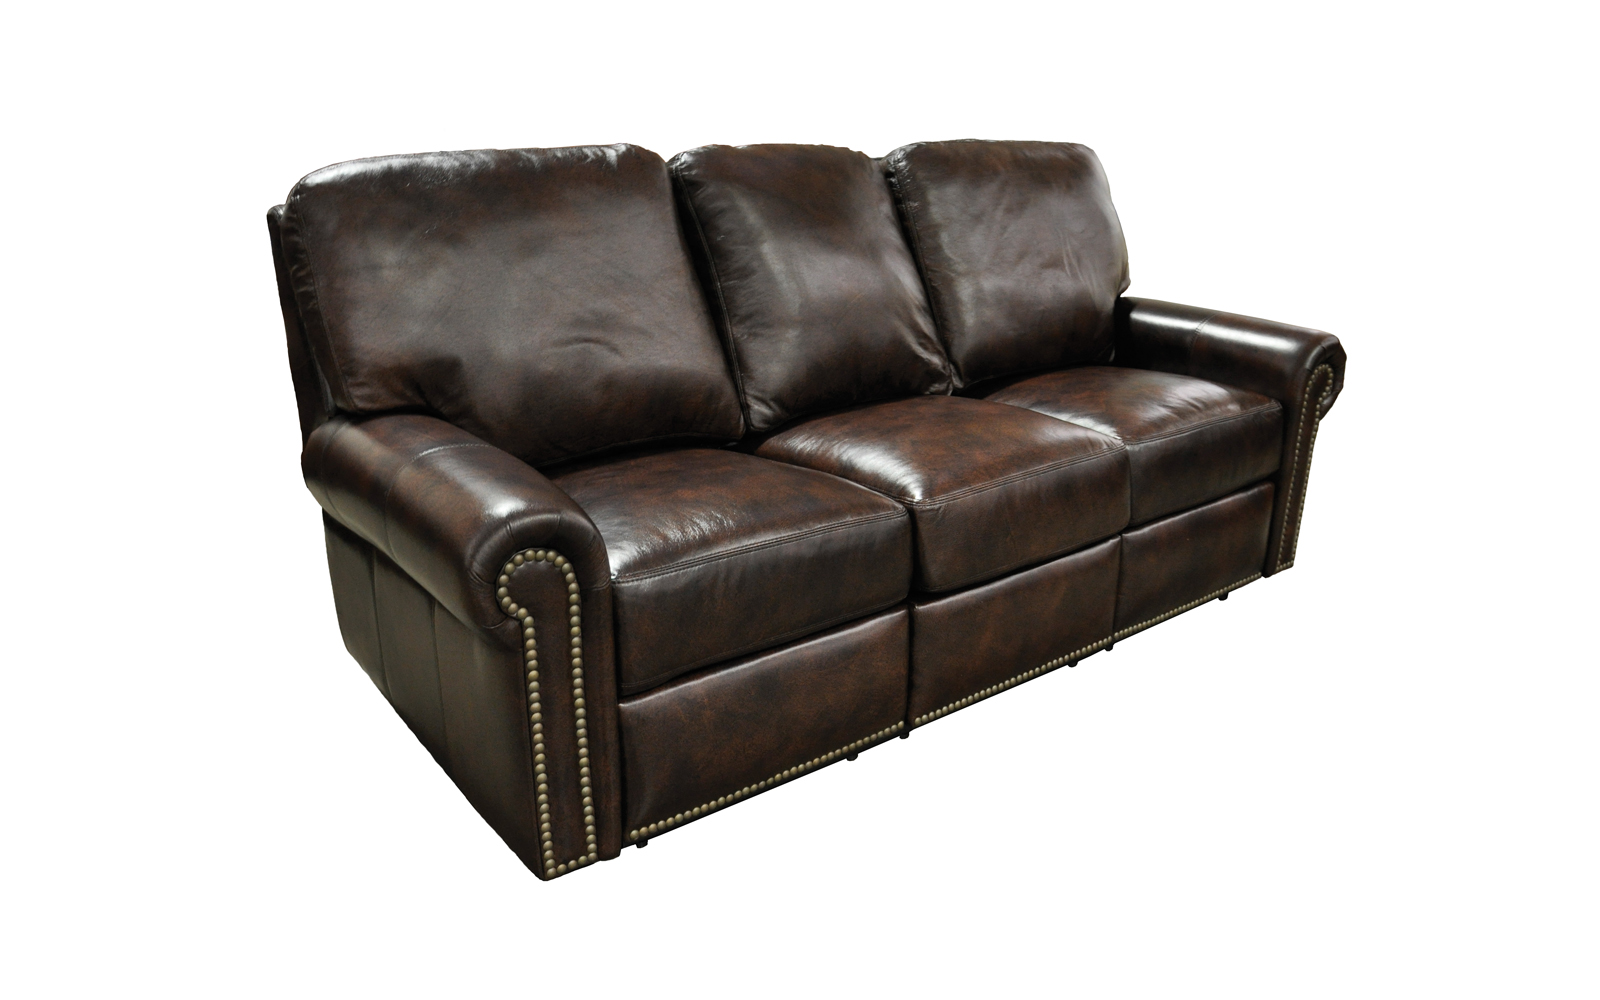 fairfield sofa bed wooden for sale singapore reclining  arizona leather interiors